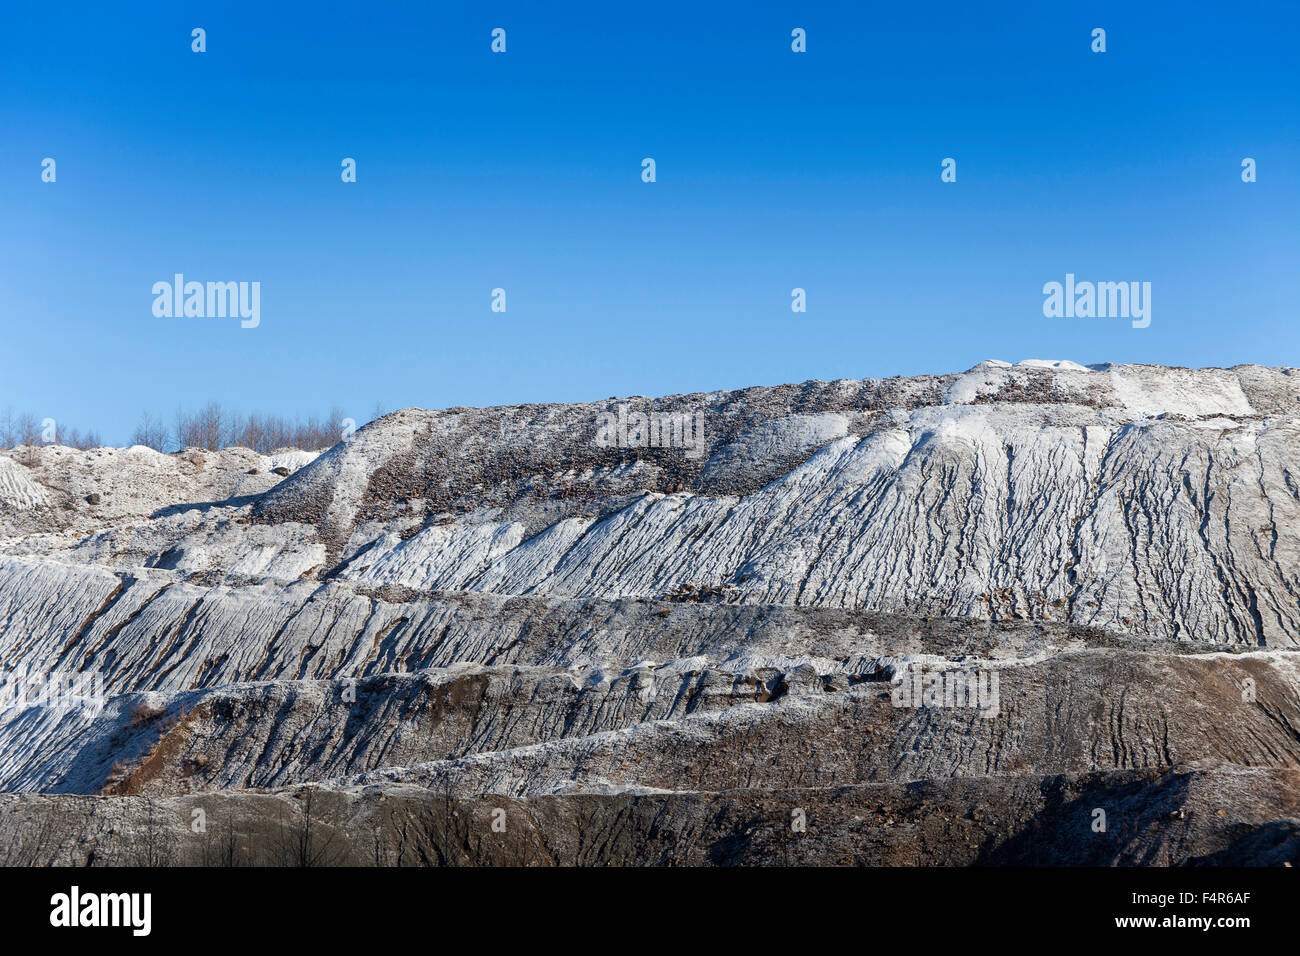 Dismantling, outside, mining, Gabbro, rock, production, extraction, industry, lime, lime rock, limestone, deserted, - Stock Image